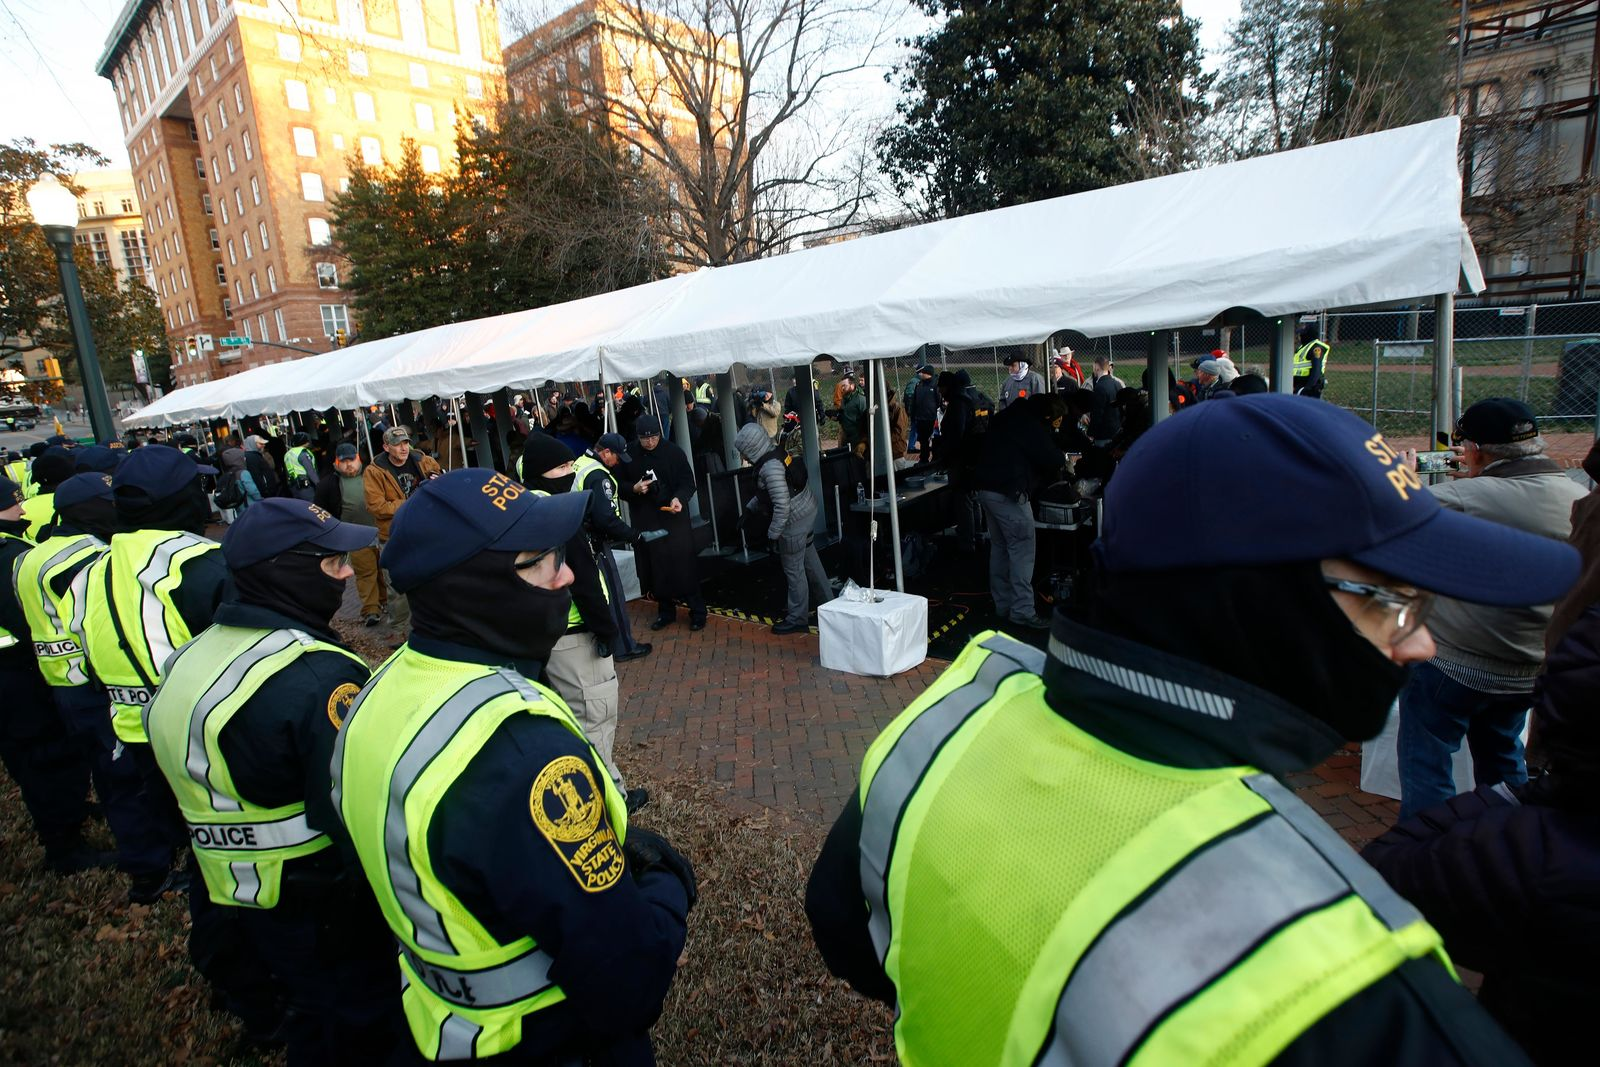 Virginia State police troopers stand near a security checkpoint before demonstrators enter the capitol grounds ahead of a pro gun rally, Monday, Jan. 20, 2020, in Richmond, Va. (AP Photo/Steve Helber)